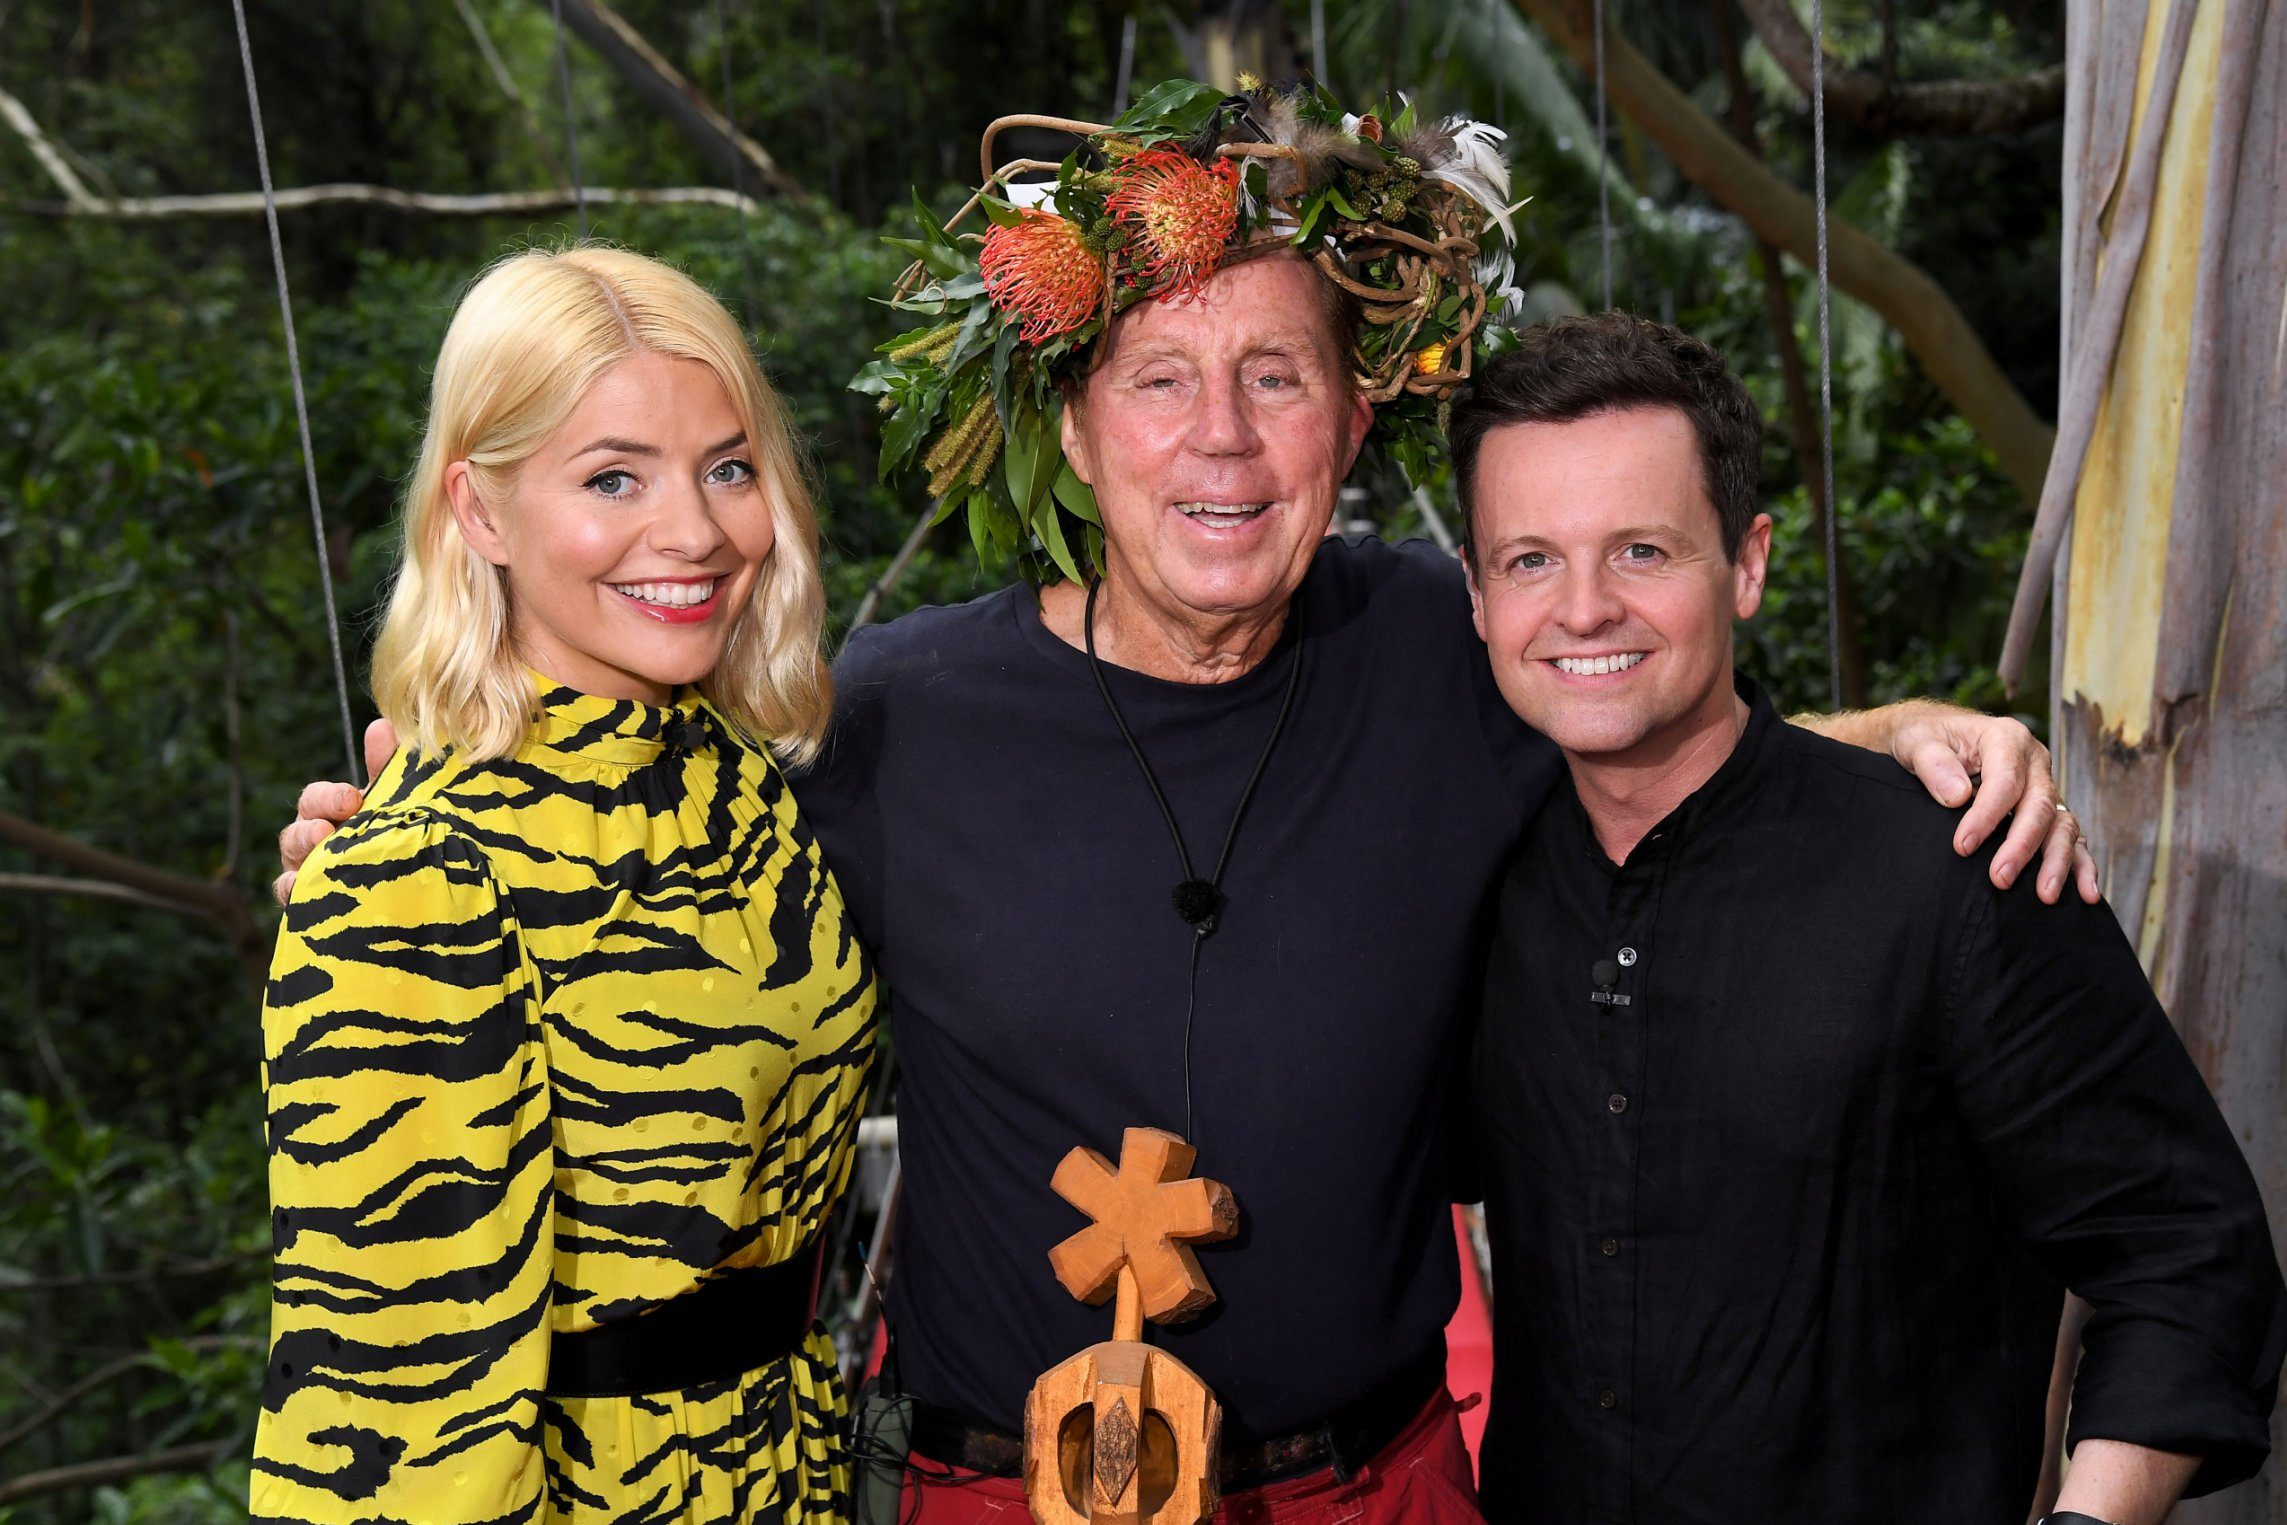 Editorial use only Mandatory Credit: Photo by James Gourley/ITV/REX (10019593t) Harry Redknapp is crowned King of the Jungle and is joined by Holly Willoughby and Declan Donnelly 'I'm a Celebrity... Get Me Out of Here!' TV Show, Series 18, Australia - 09 Dec 2018